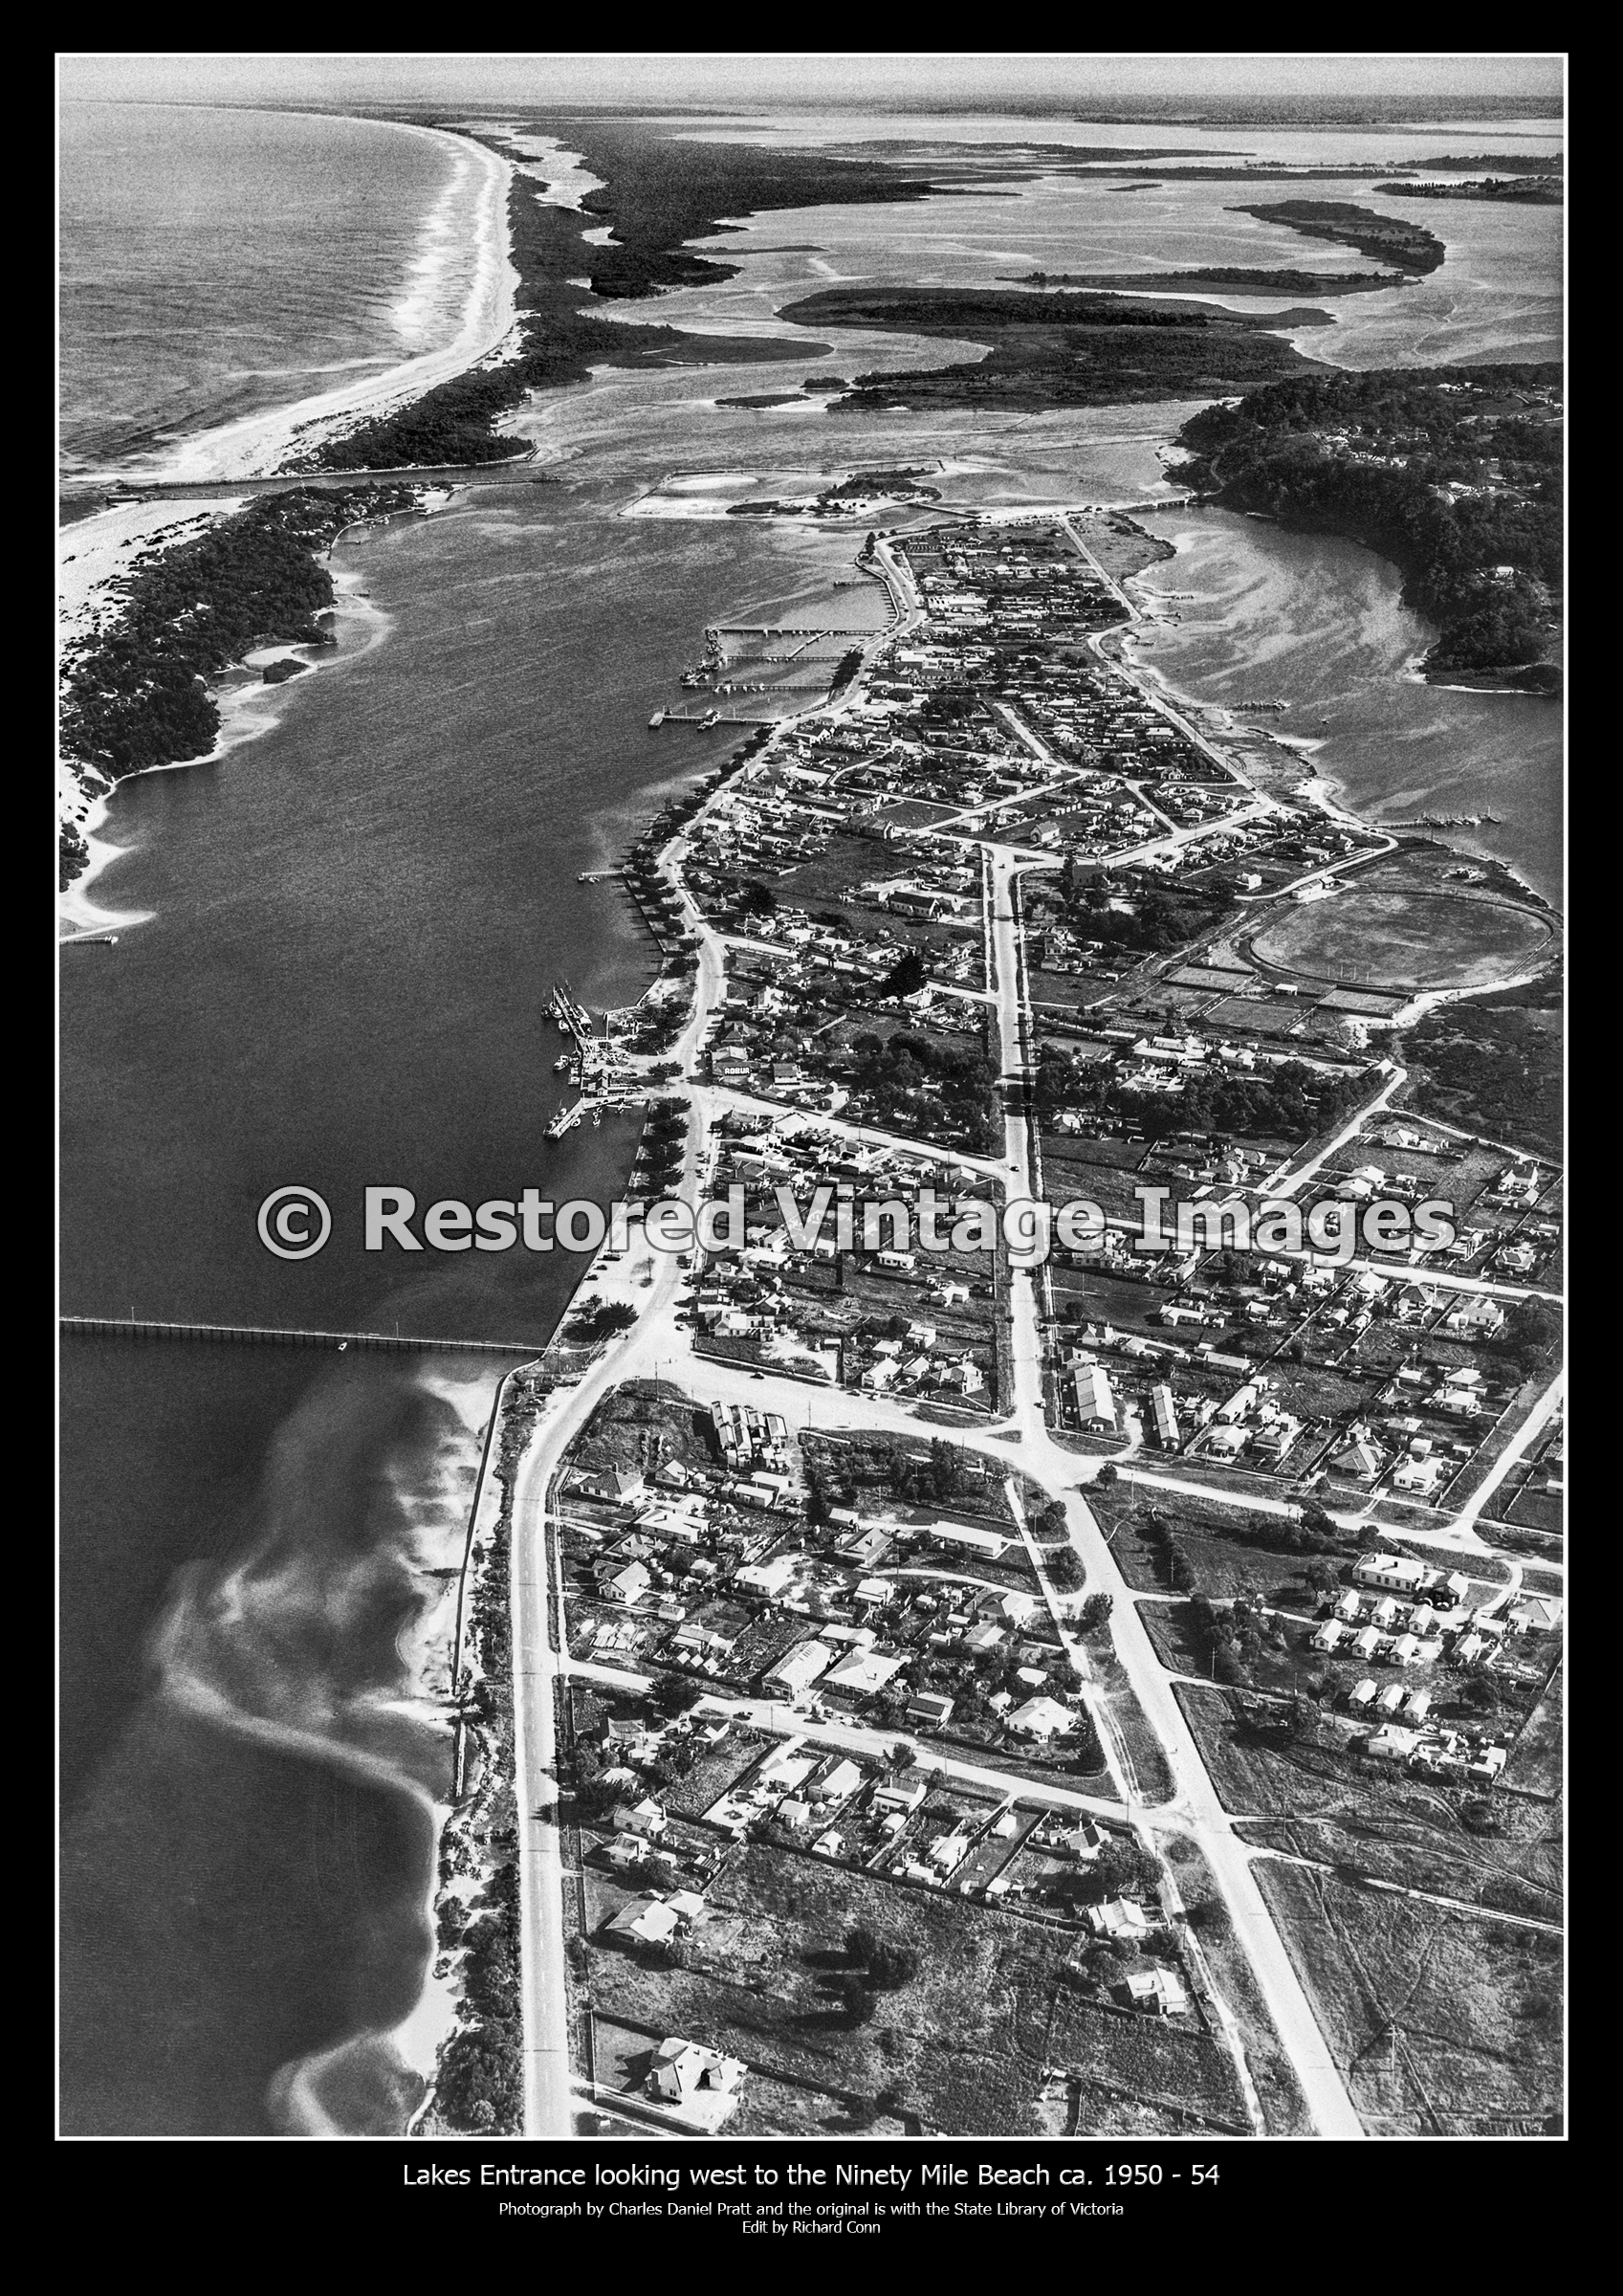 Lakes Entrance Looking West To The Ninety Mile Beach Ca. 1950 – 54